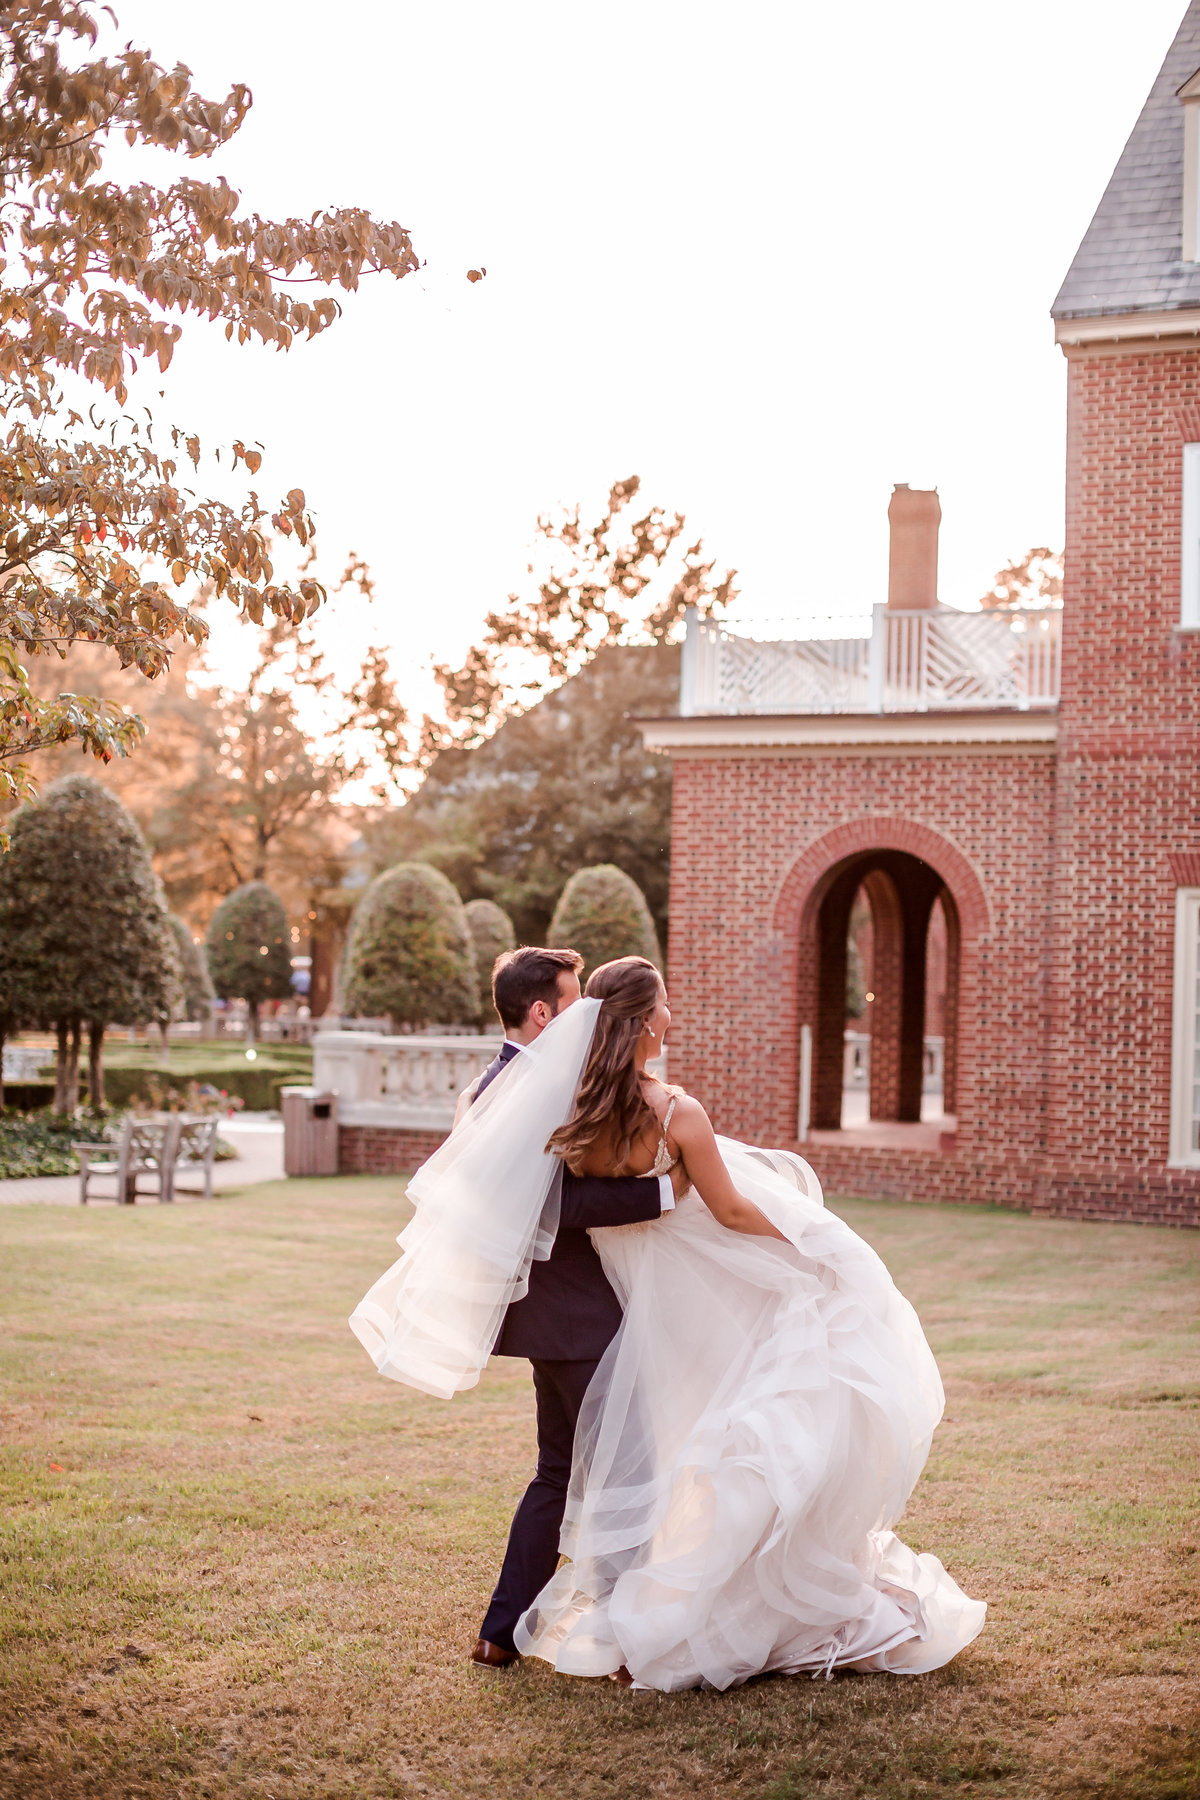 meghan lupyan hampton roads wedding photographer156